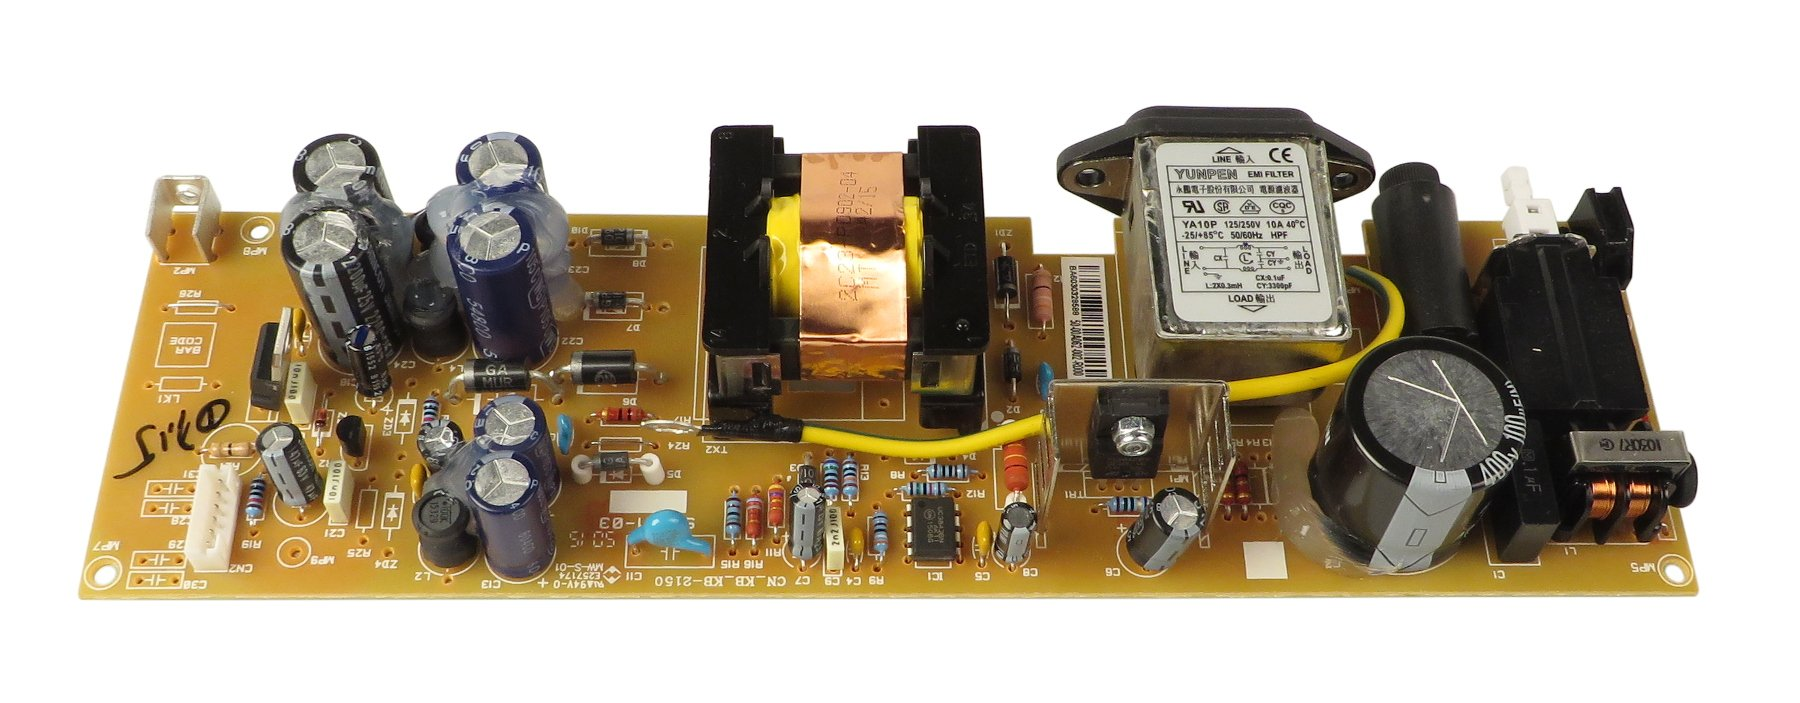 Power Supply PCB for MFXi 12 and MFX20